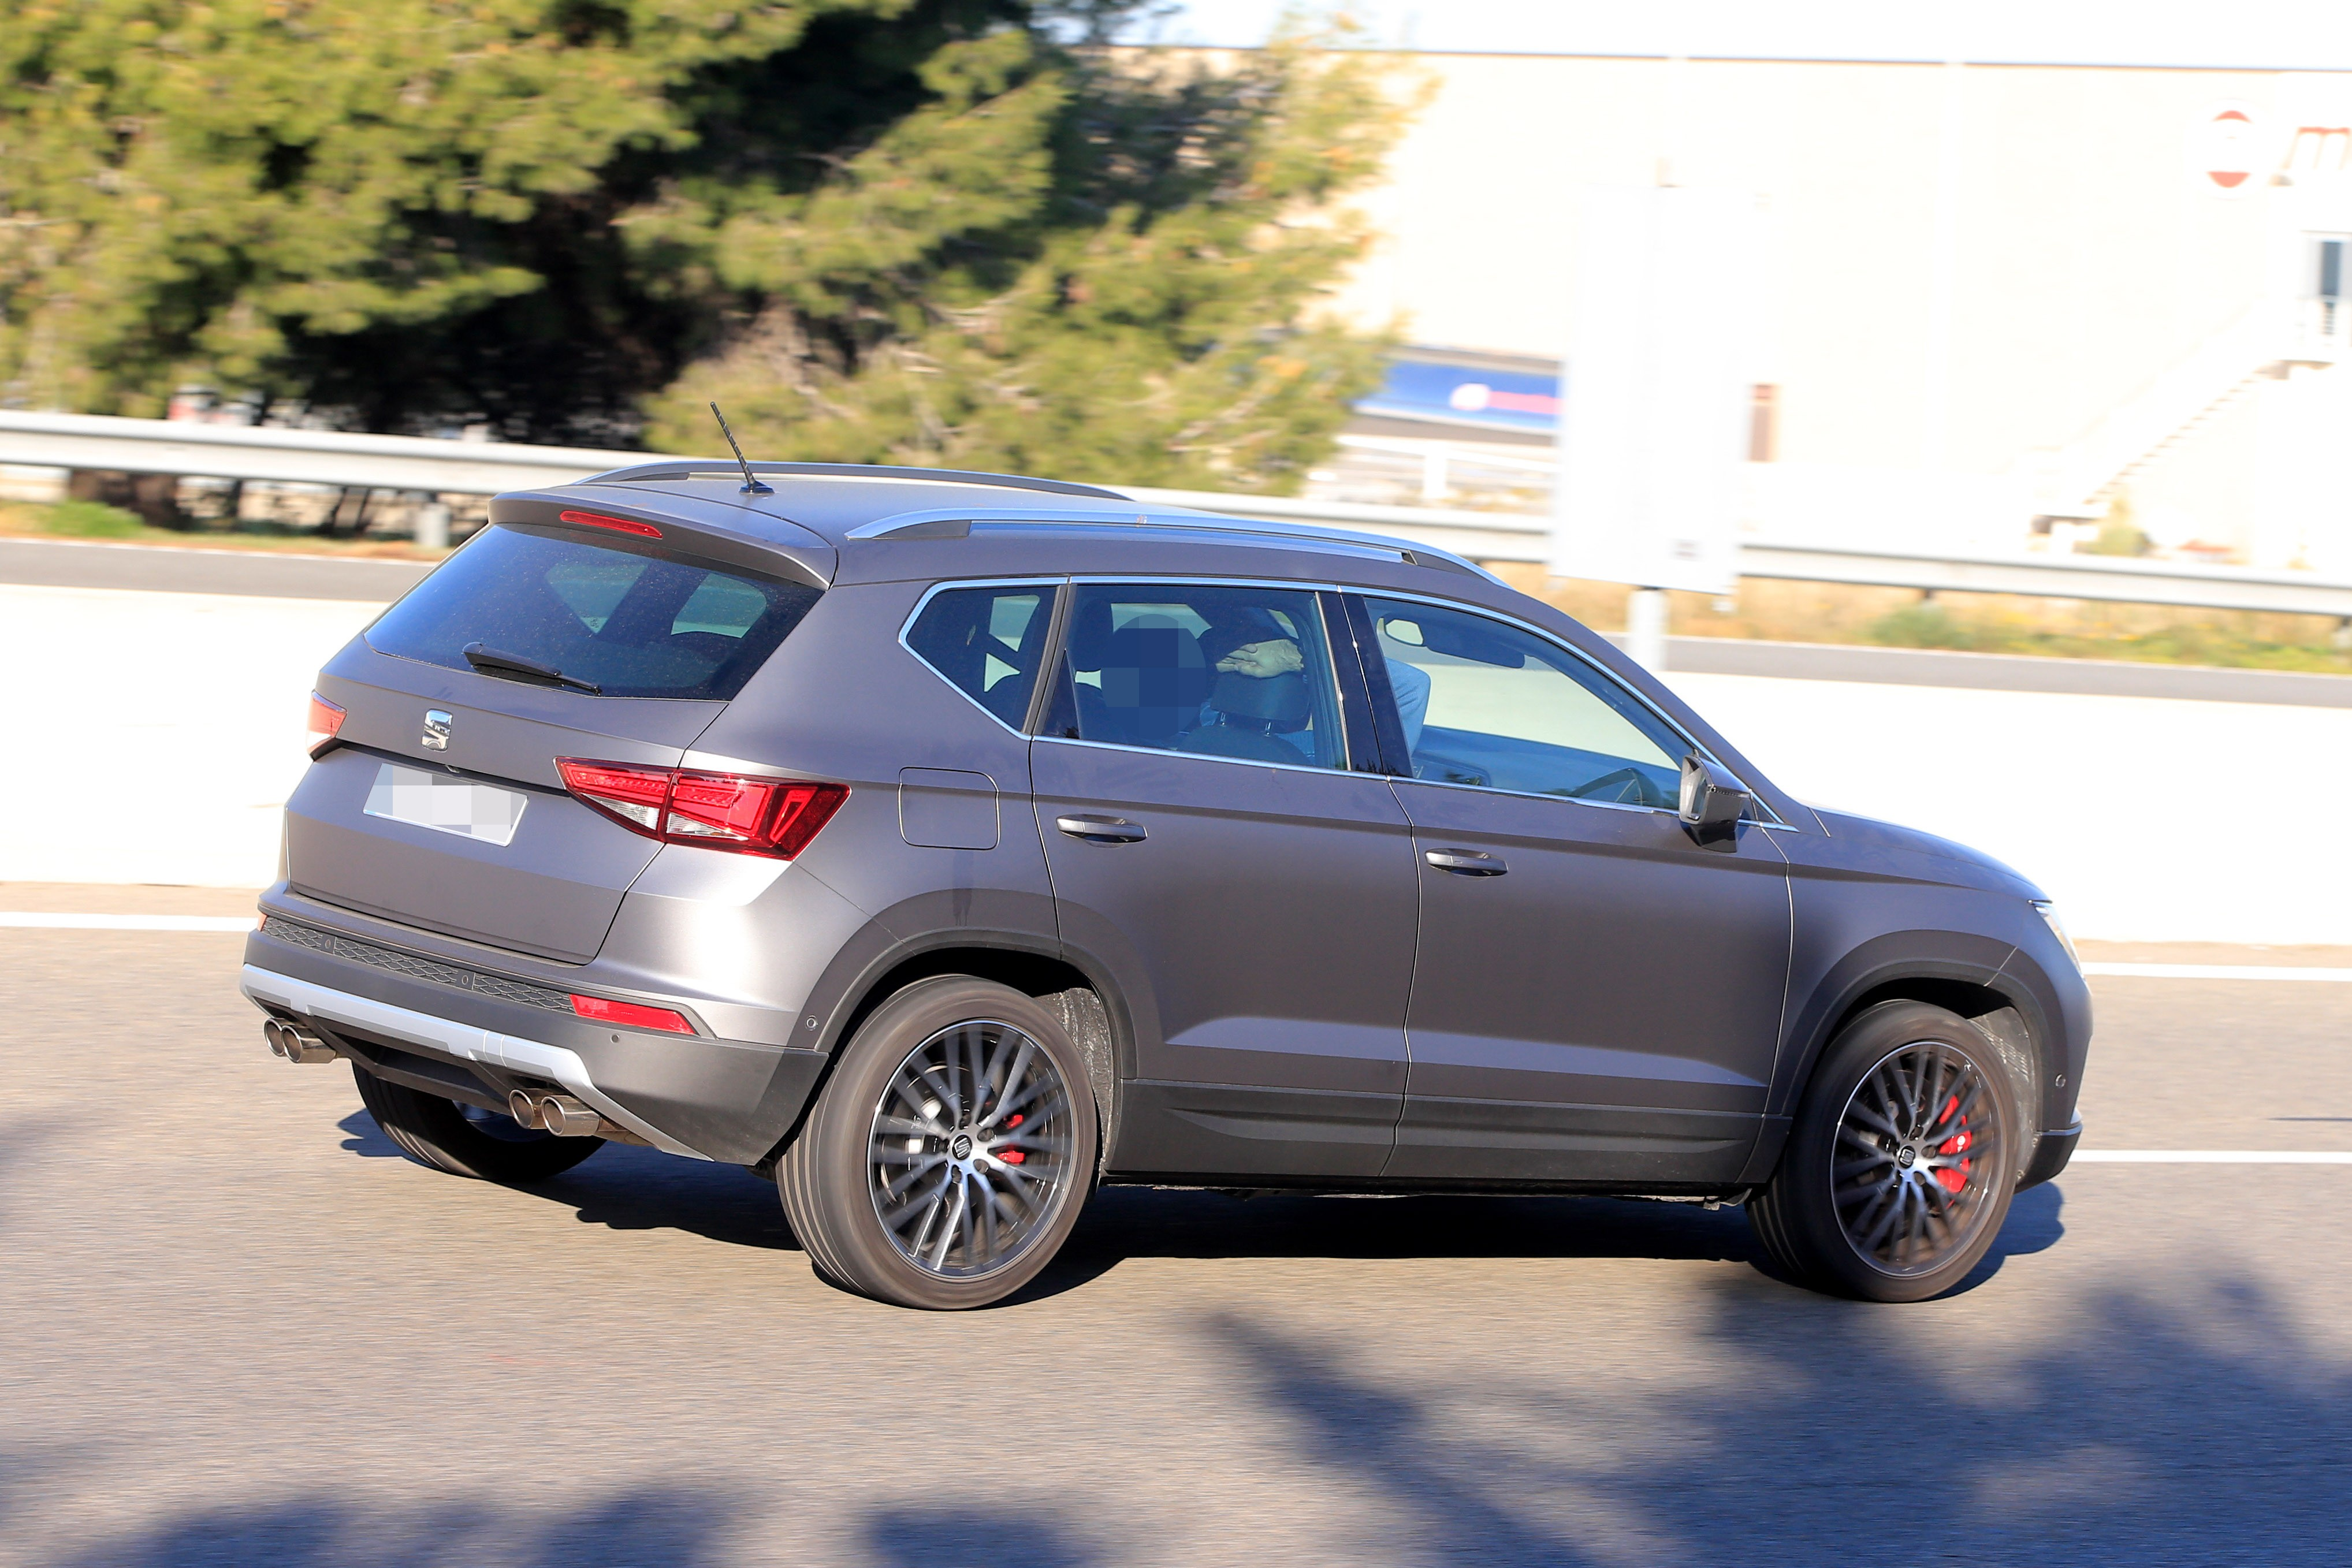 2016 - [Seat] Ateca - Page 21 Seat-ateca-cupra-spied-in-full-view-while-testing-in-spain_8